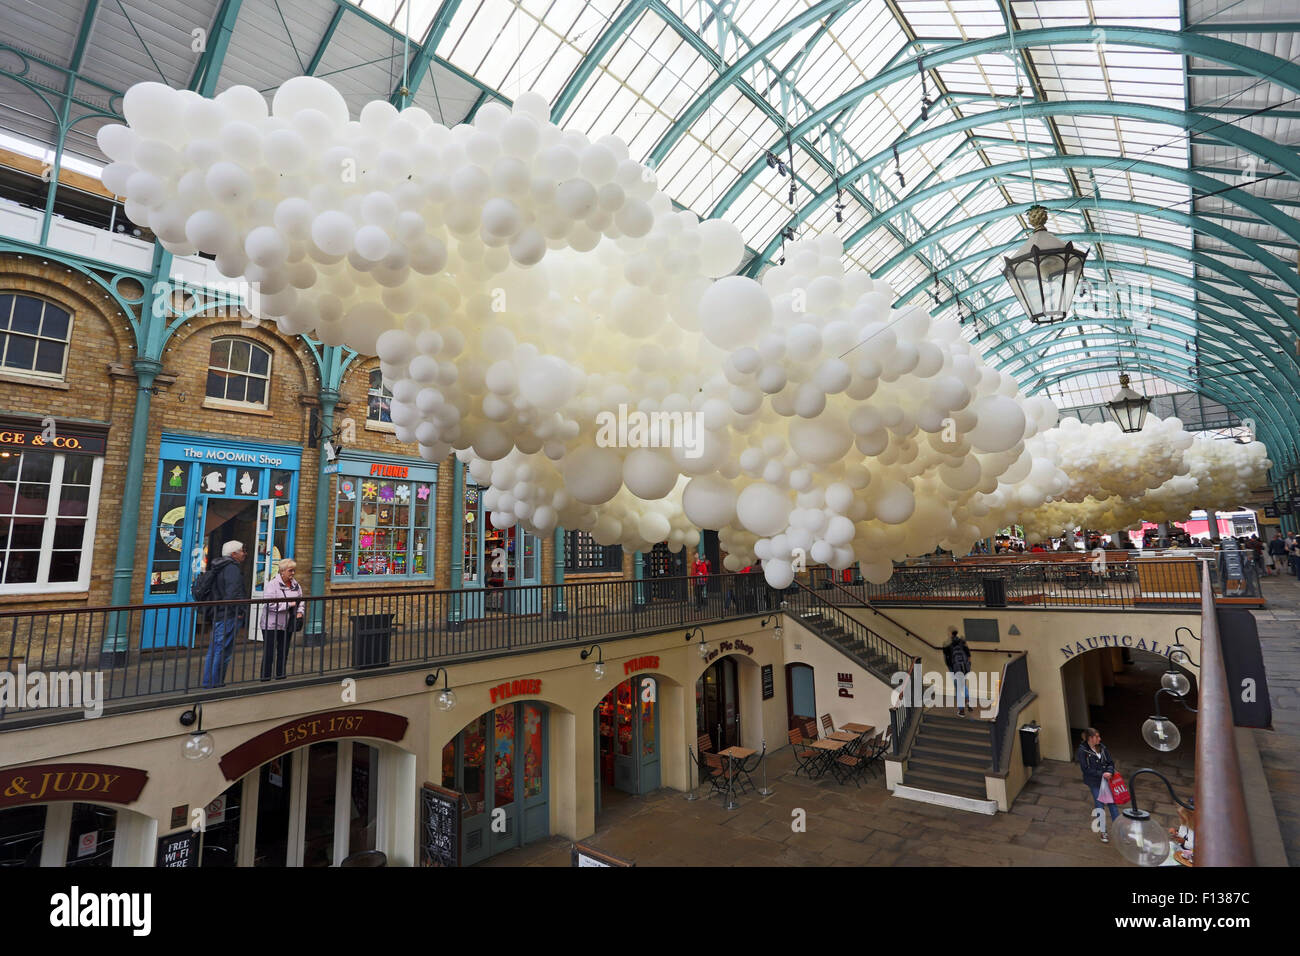 London, UK. 26th August 2015. Balloon Art Installation by Charles ...